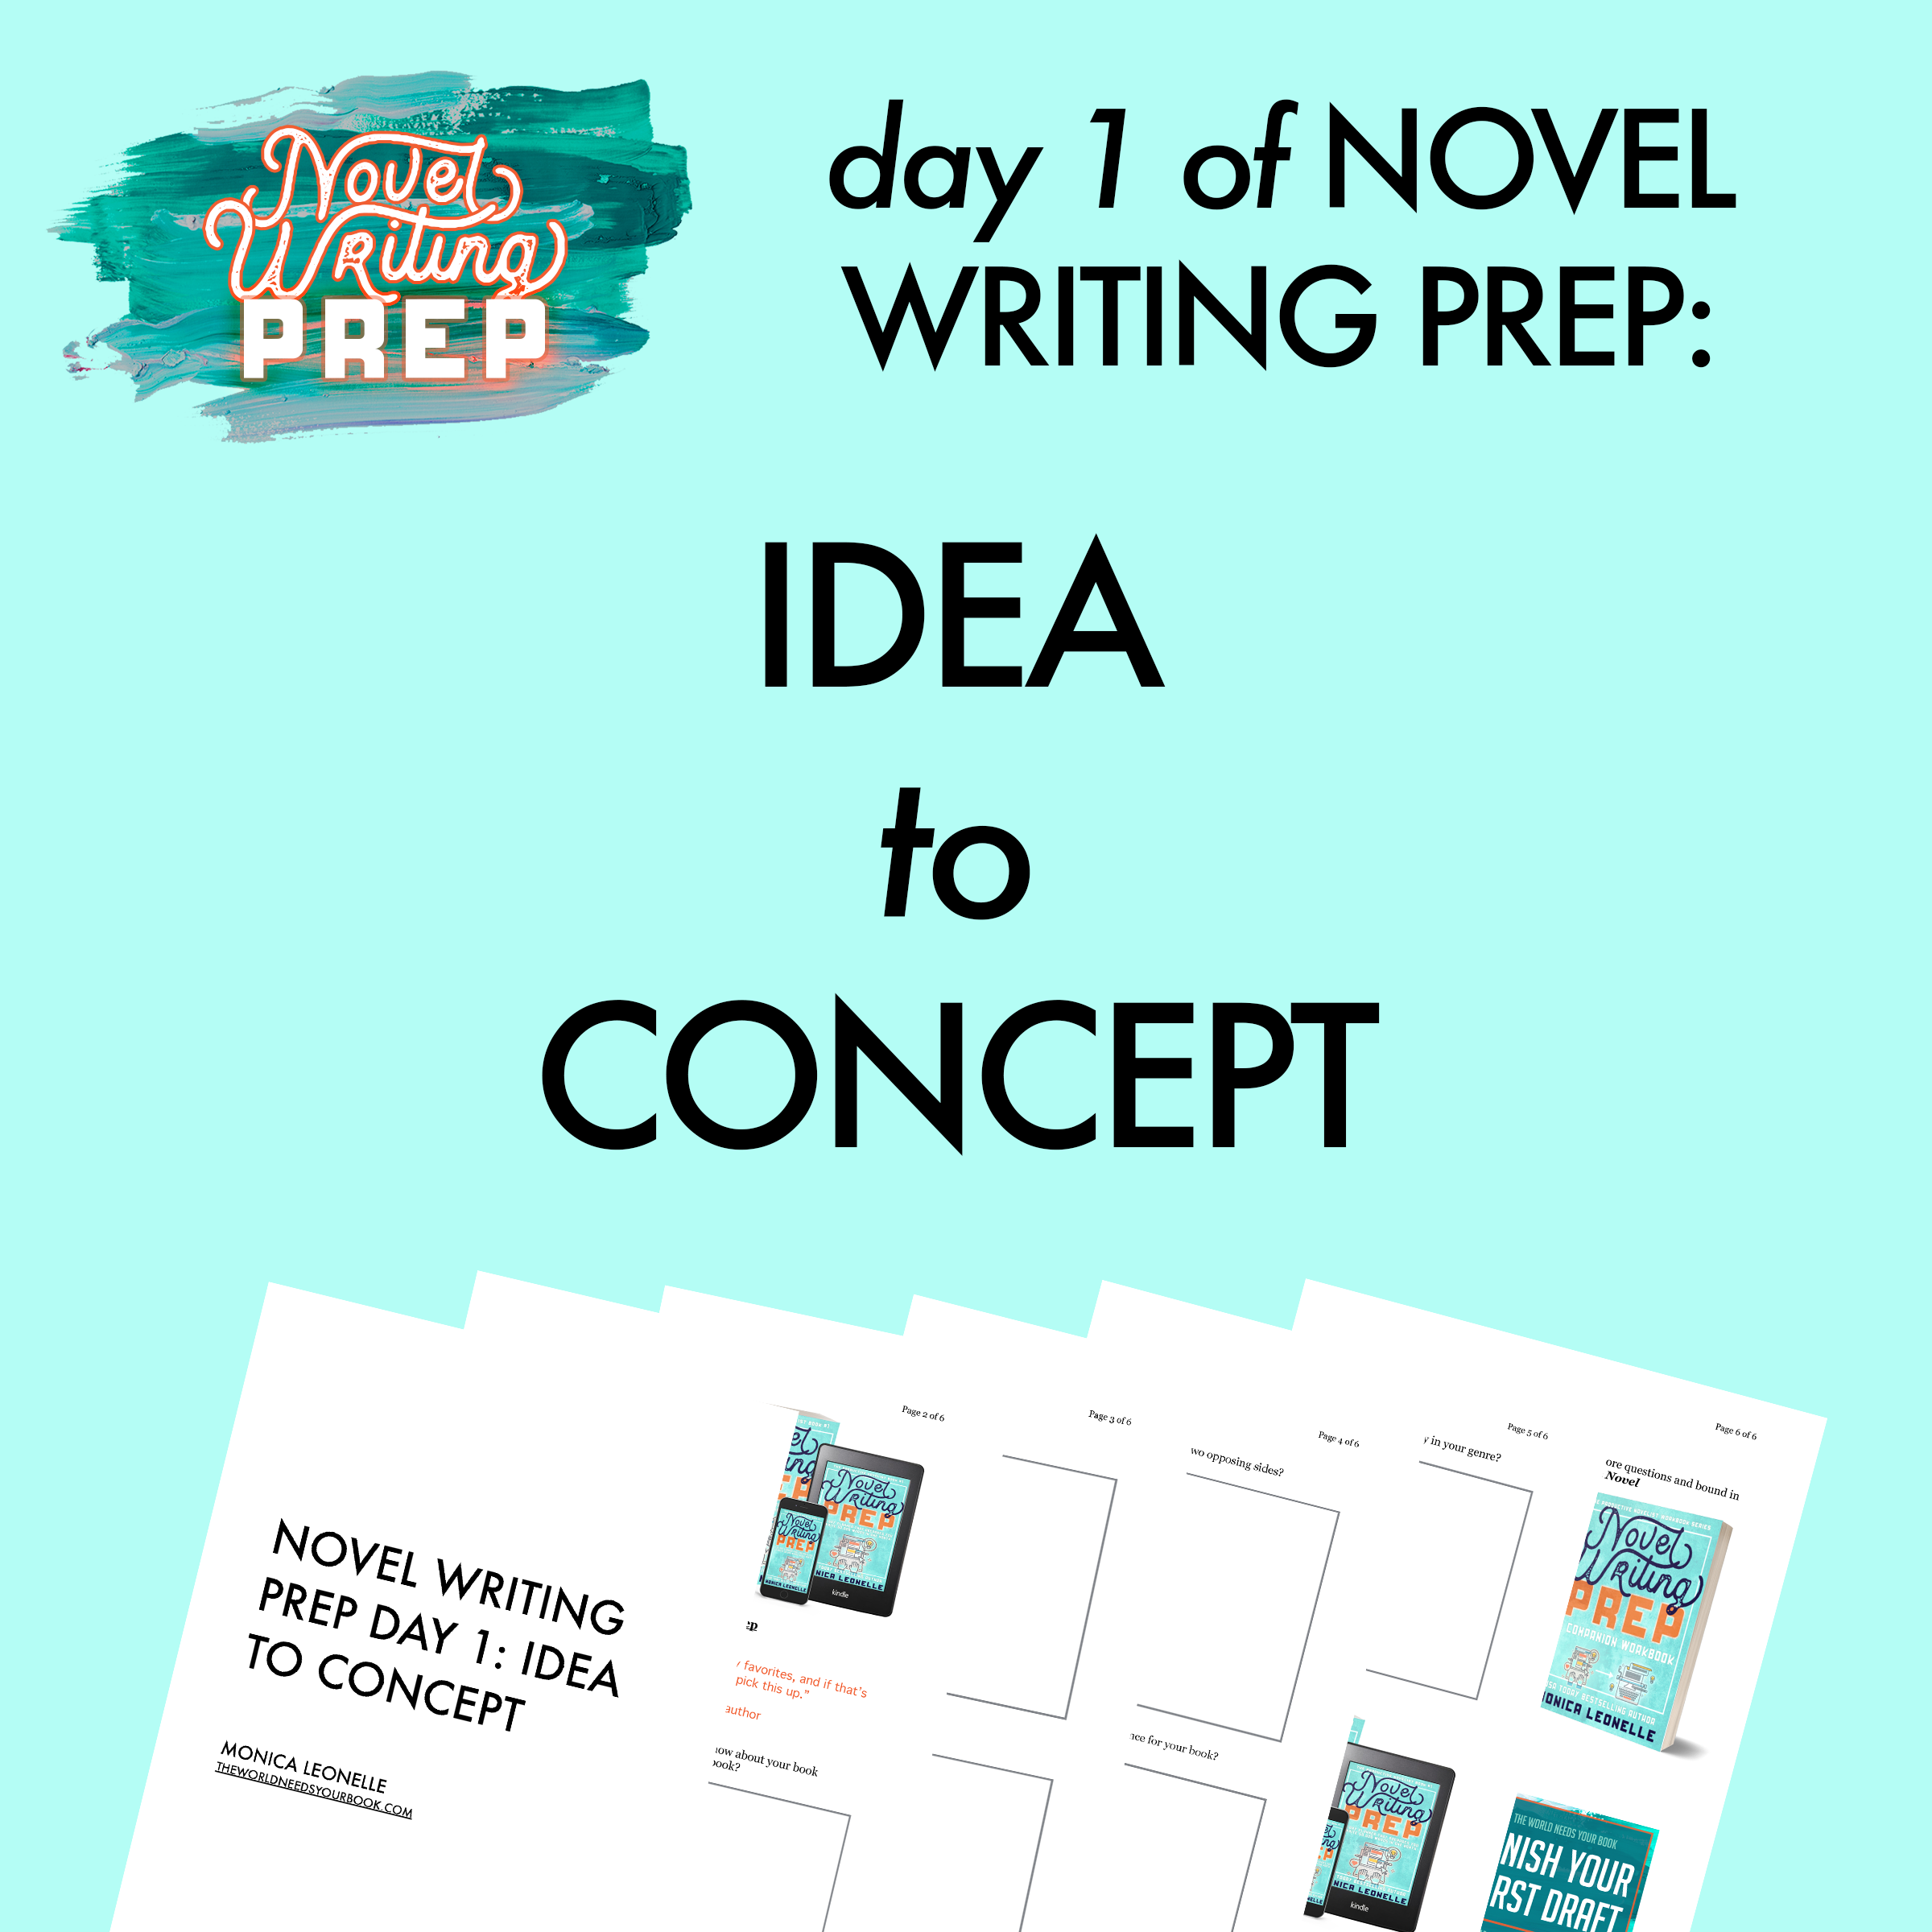 Grab The Free Worksheets For Day 1 Of Novel Writing Prep